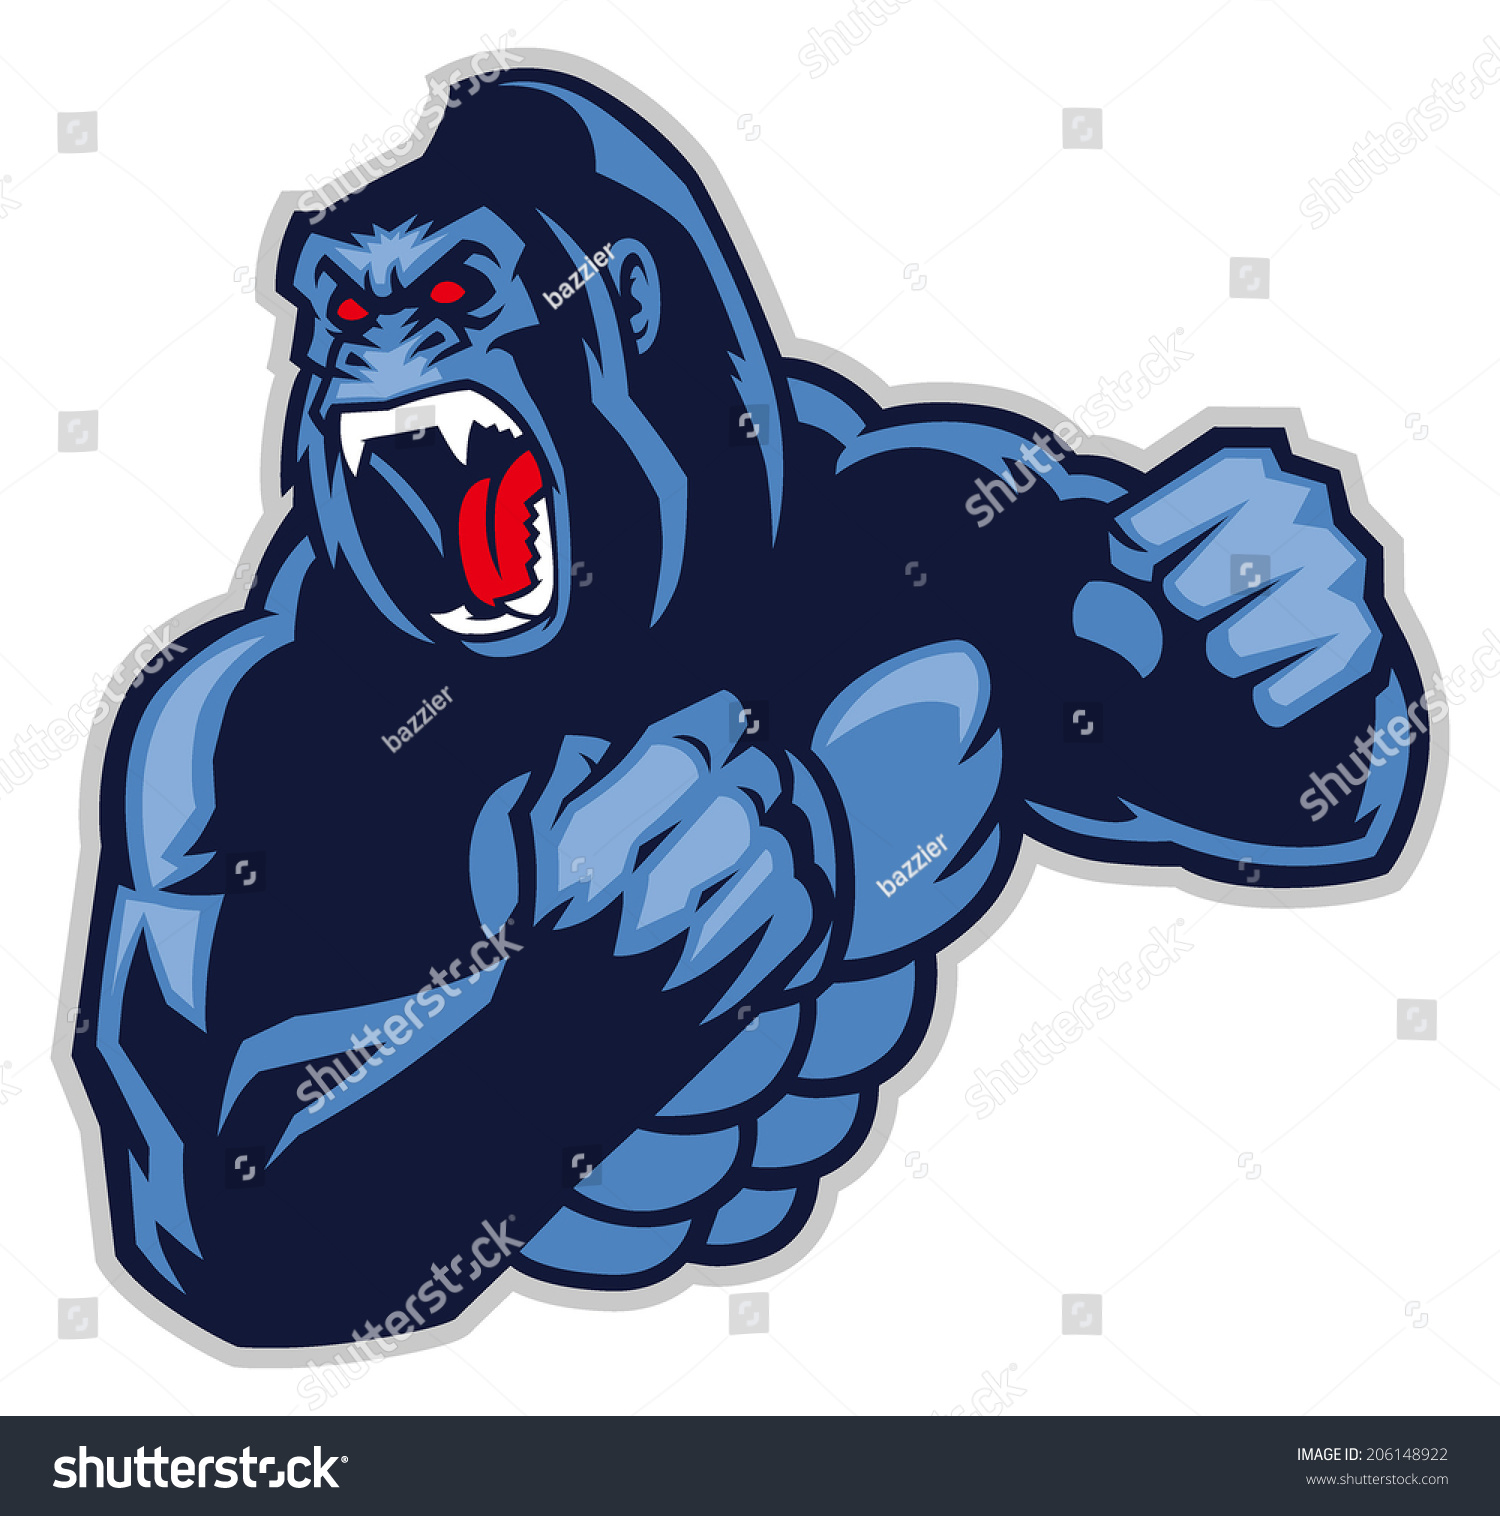 Angry Gorilla Stock Images, Royalty-Free Images & Vectors ...